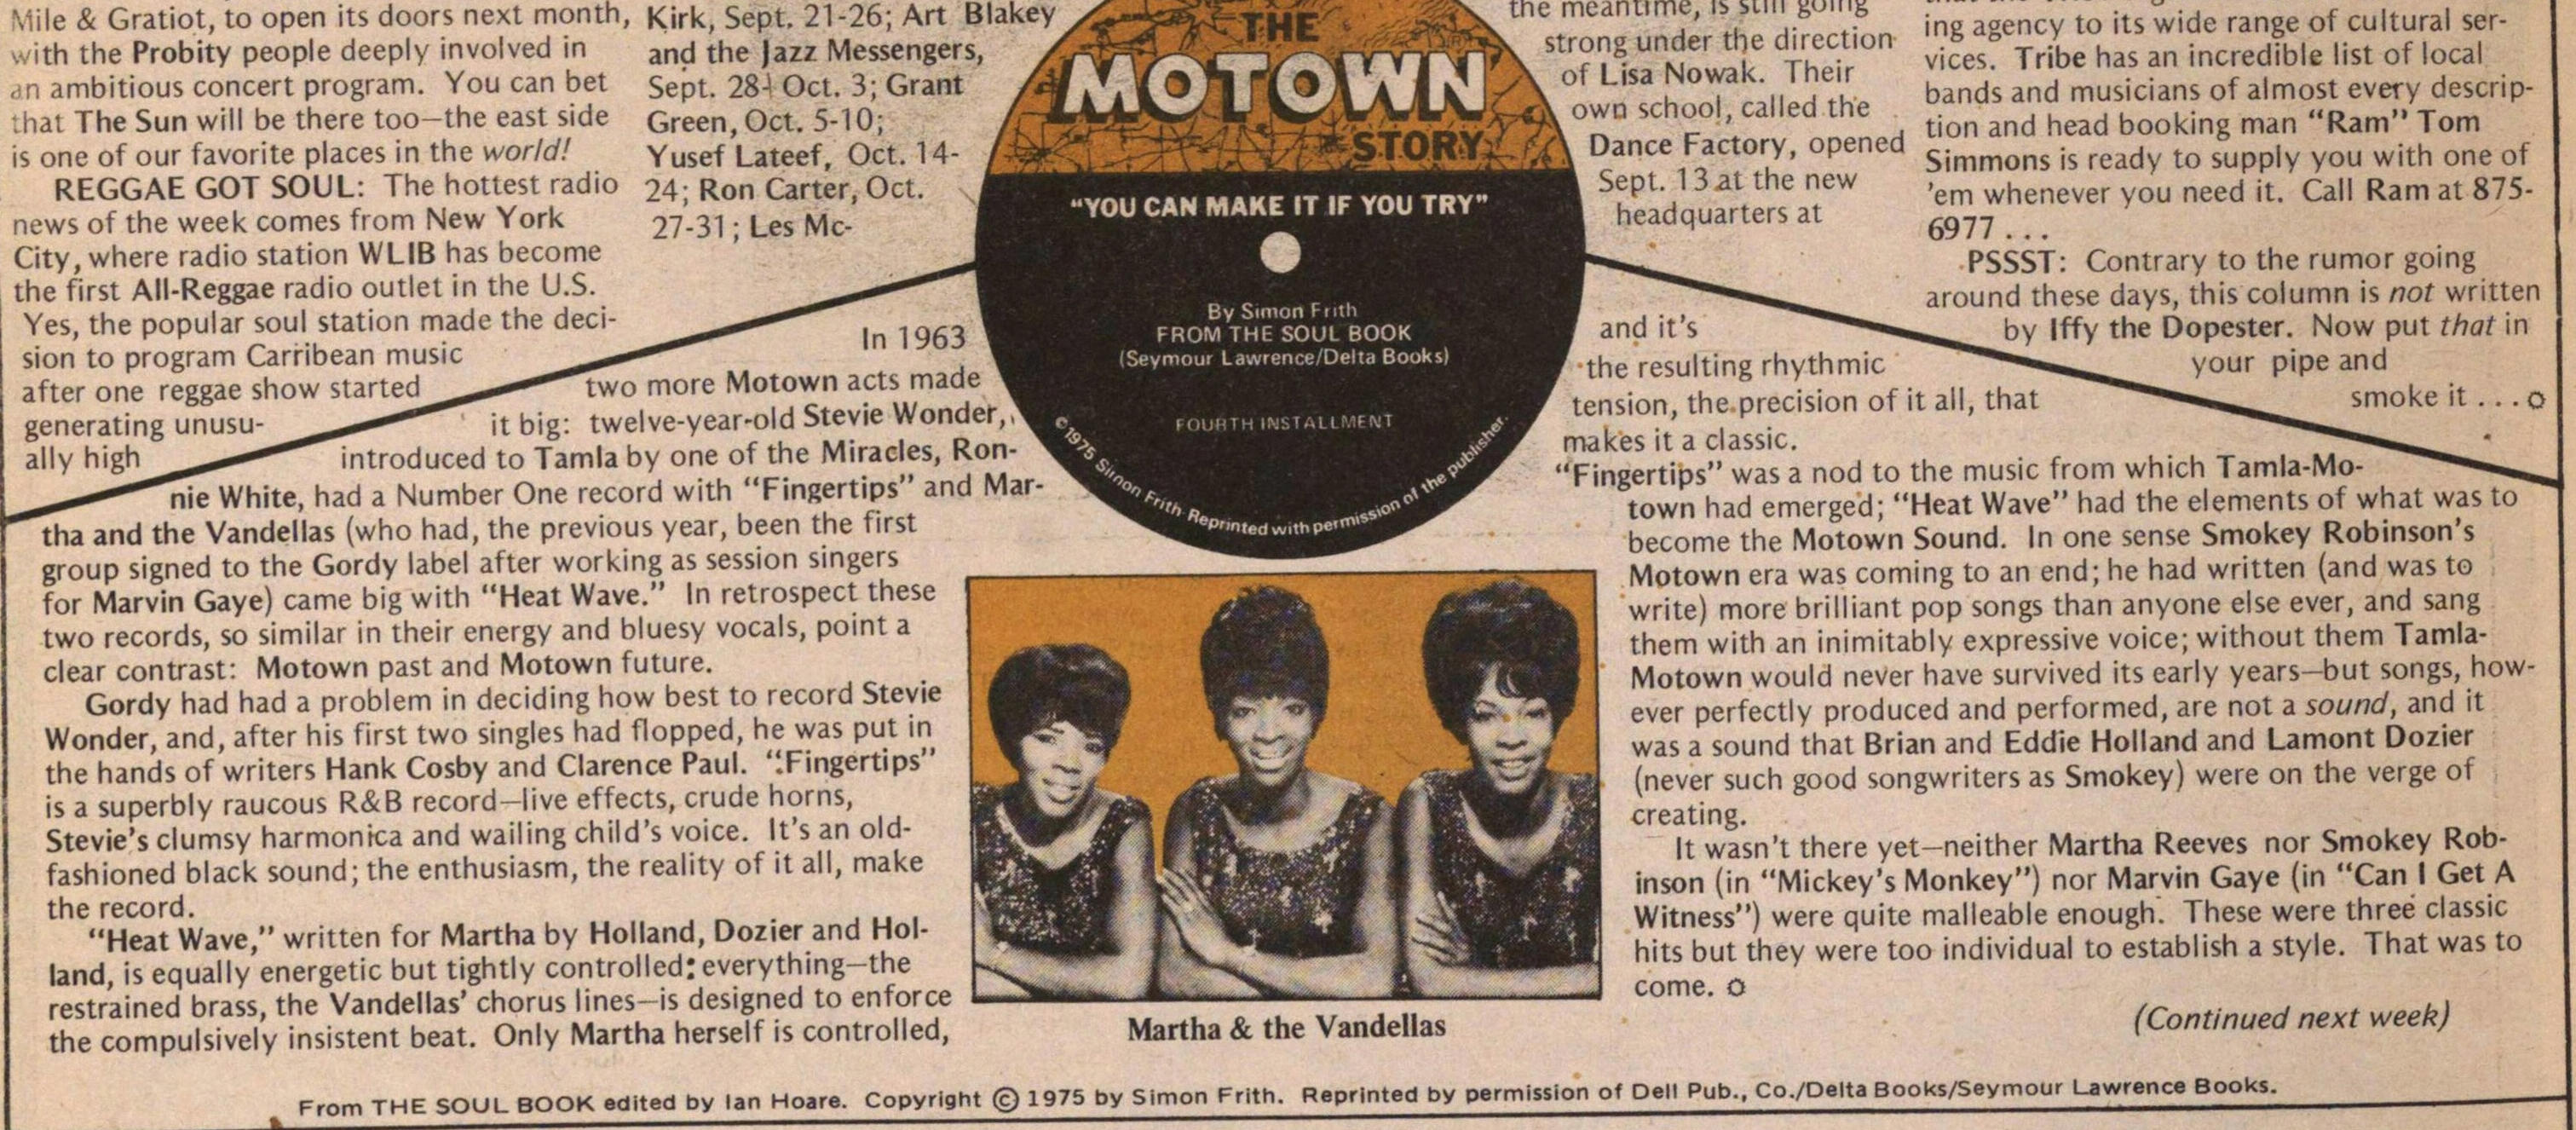 The Motown Story image